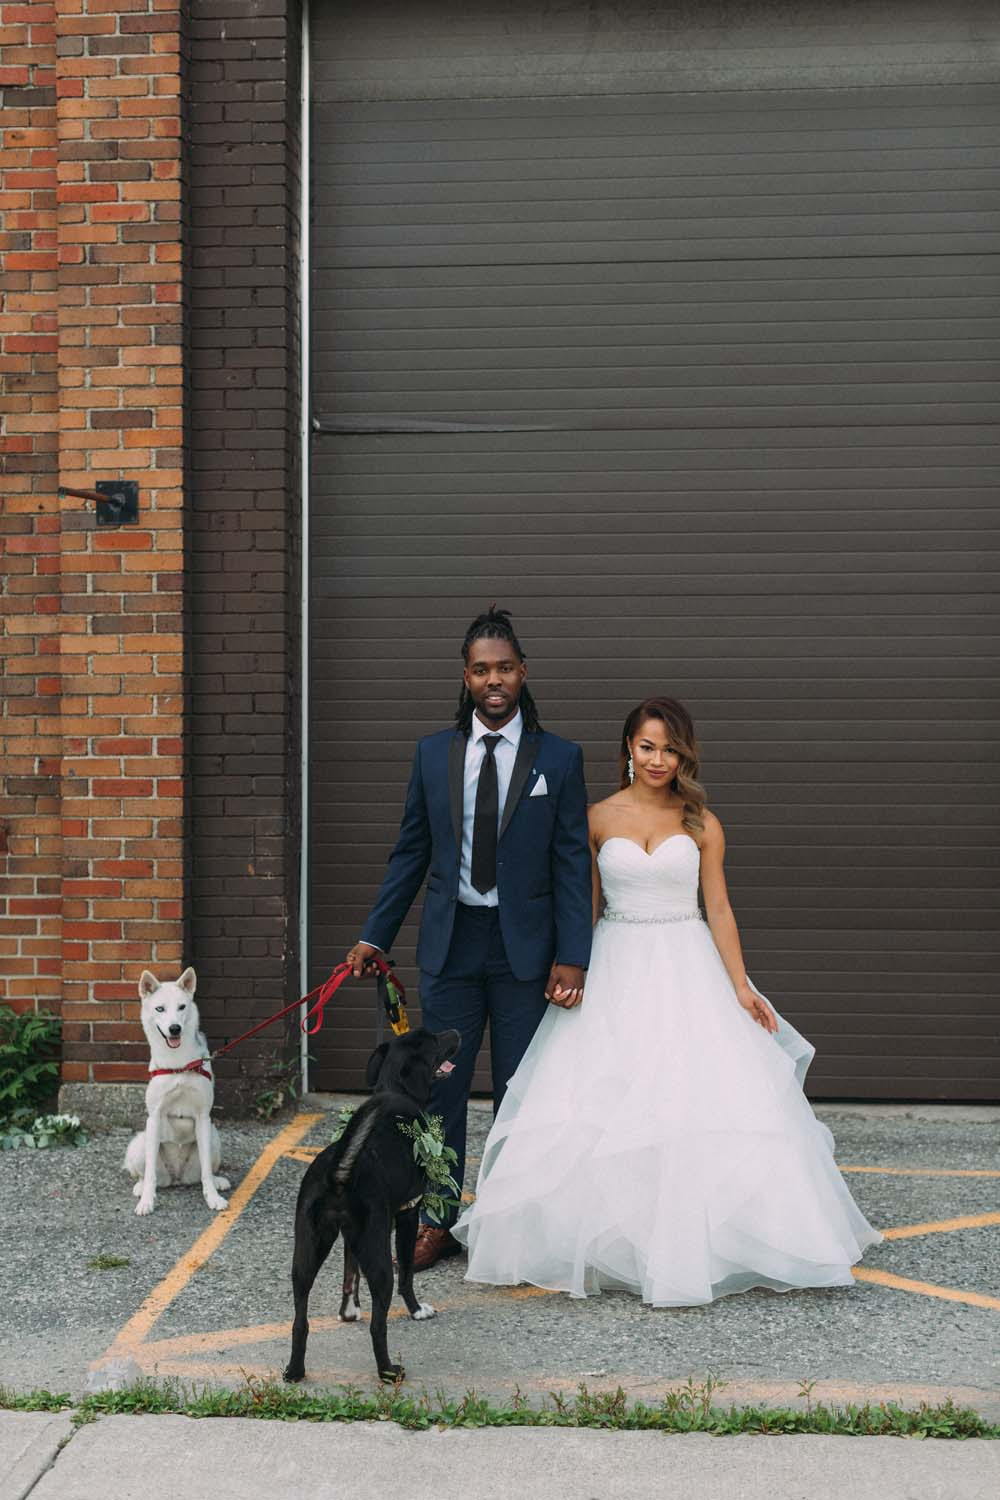 A Rustic, Industrial Wedding in Toronto, Ontario - Bride and groom with dogs